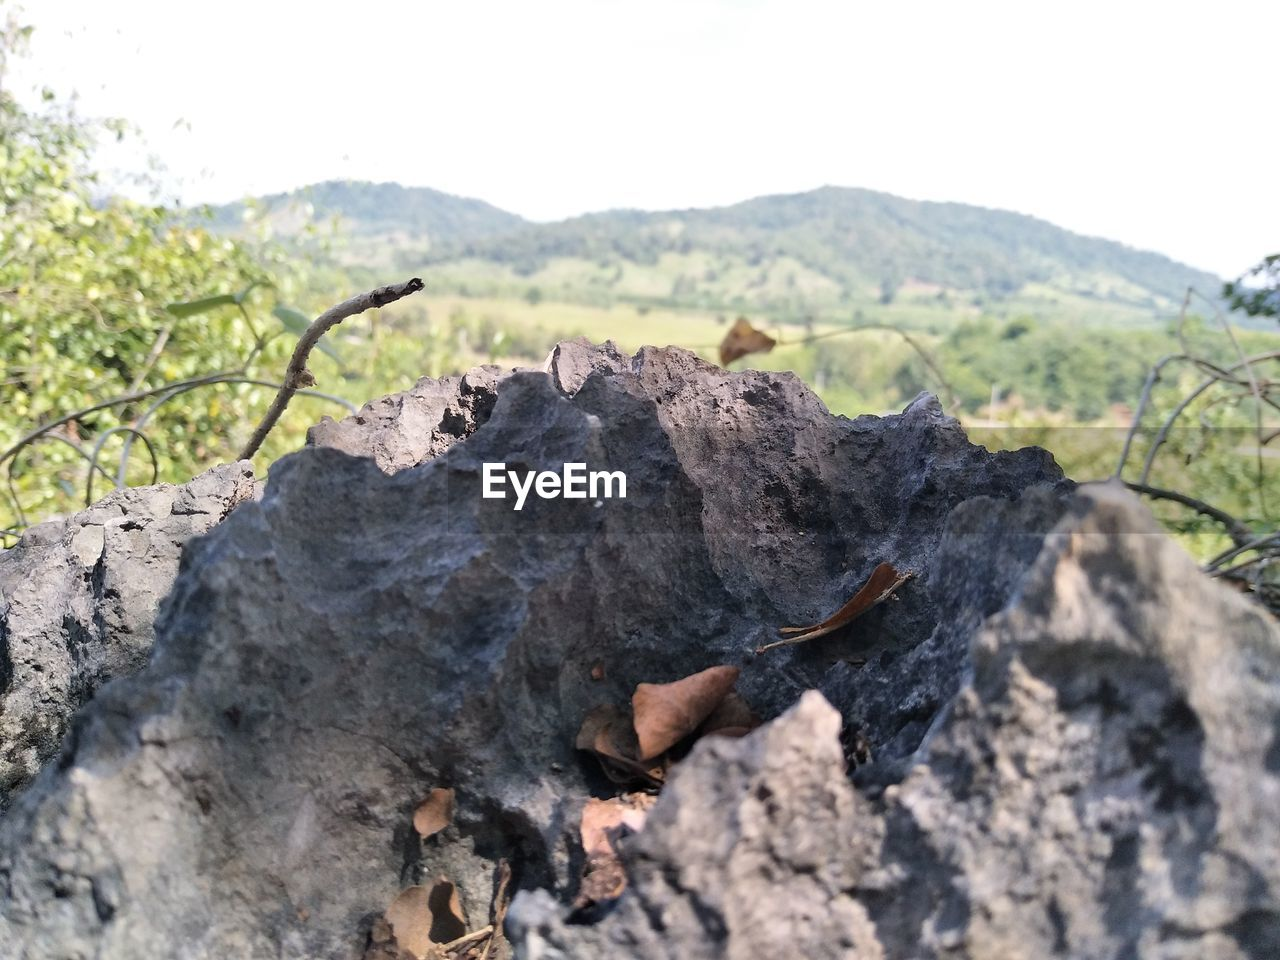 nature, rock, tree, no people, mountain, rock - object, solid, tranquility, plant, sky, focus on foreground, beauty in nature, land, day, close-up, outdoors, scenics - nature, non-urban scene, tranquil scene, sunlight